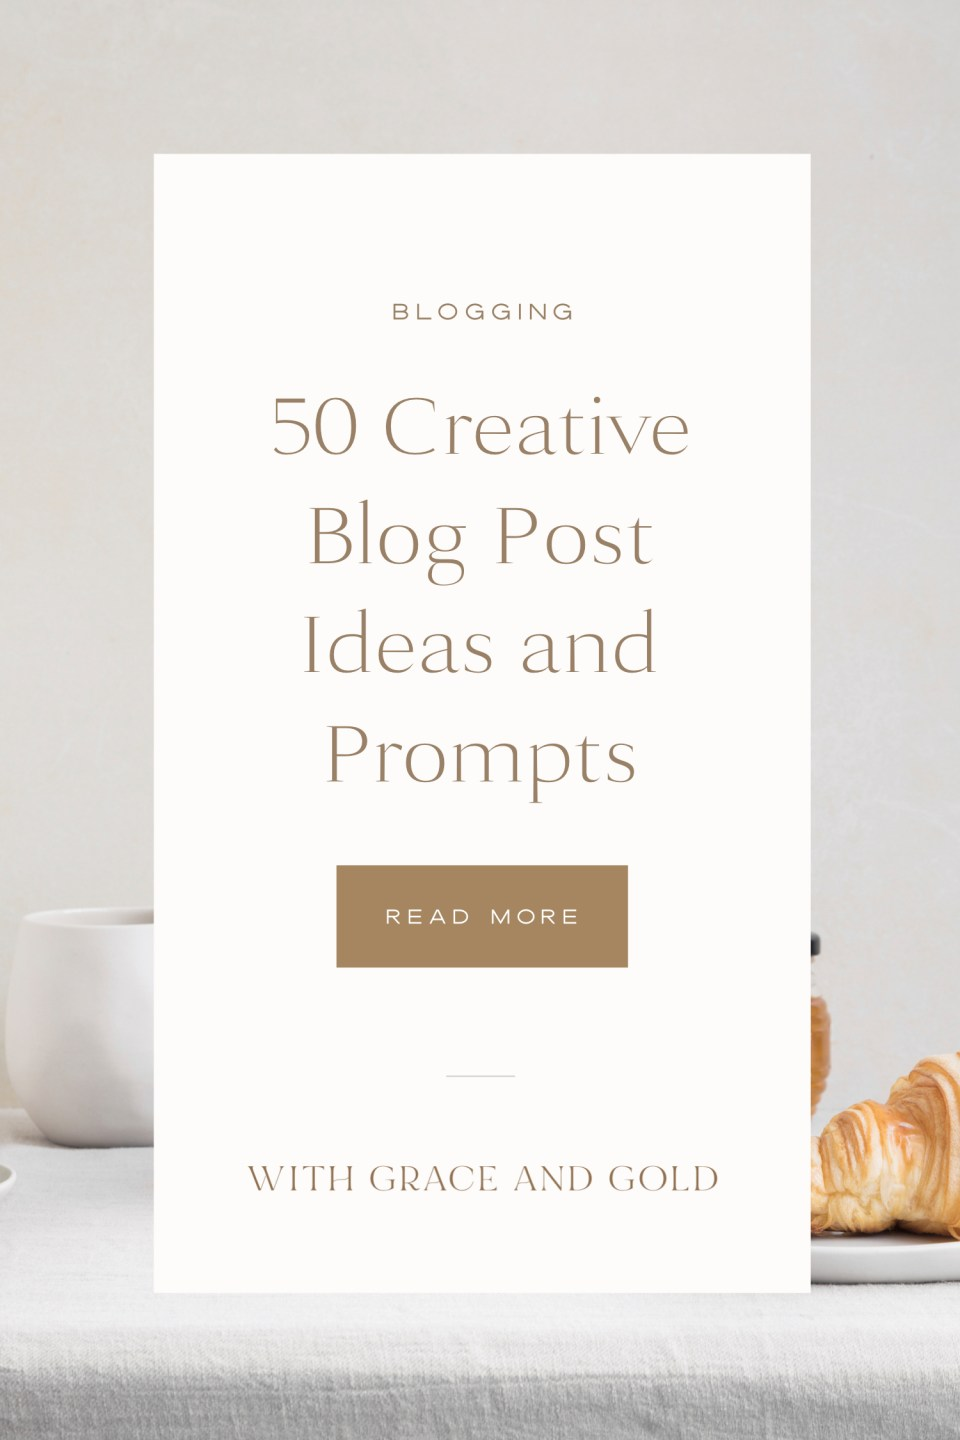 50 Creative Blog Post Ideas and Prompts - Custom Brand and Showit Website Design for Creative Women in Business - With Grace and Gold